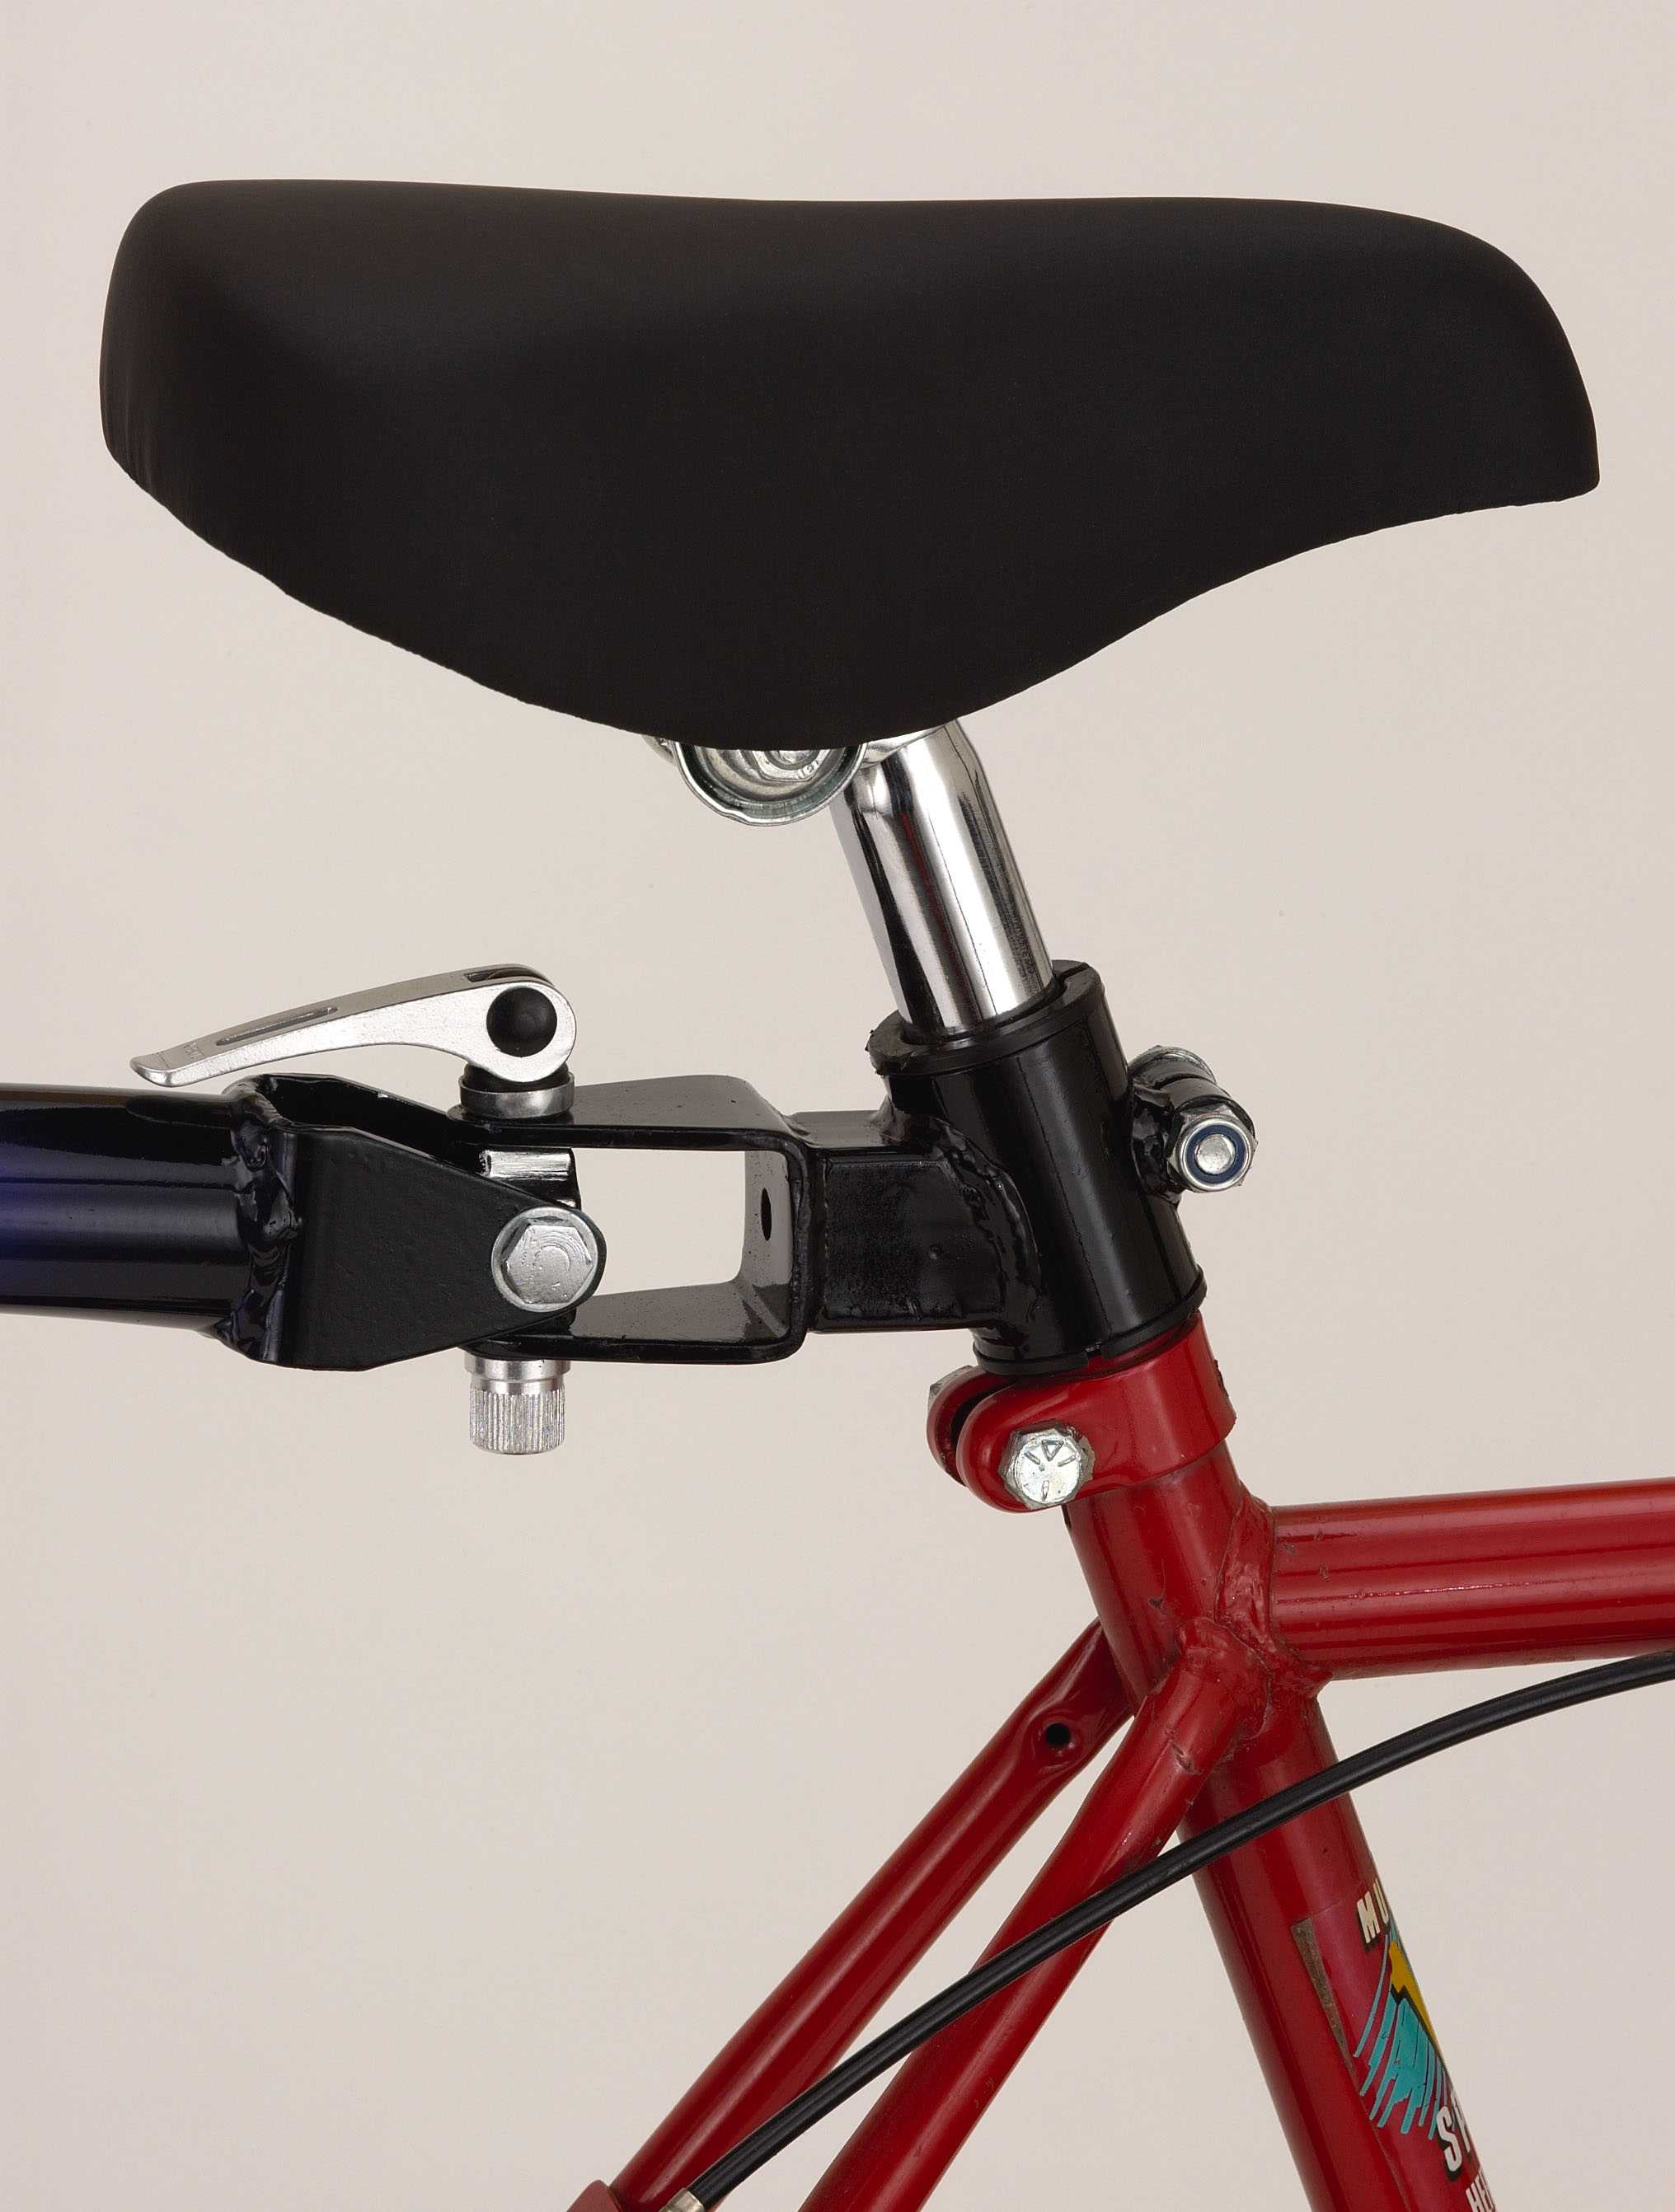 Picture of Recalled Trailer Bike's Universal Joint System